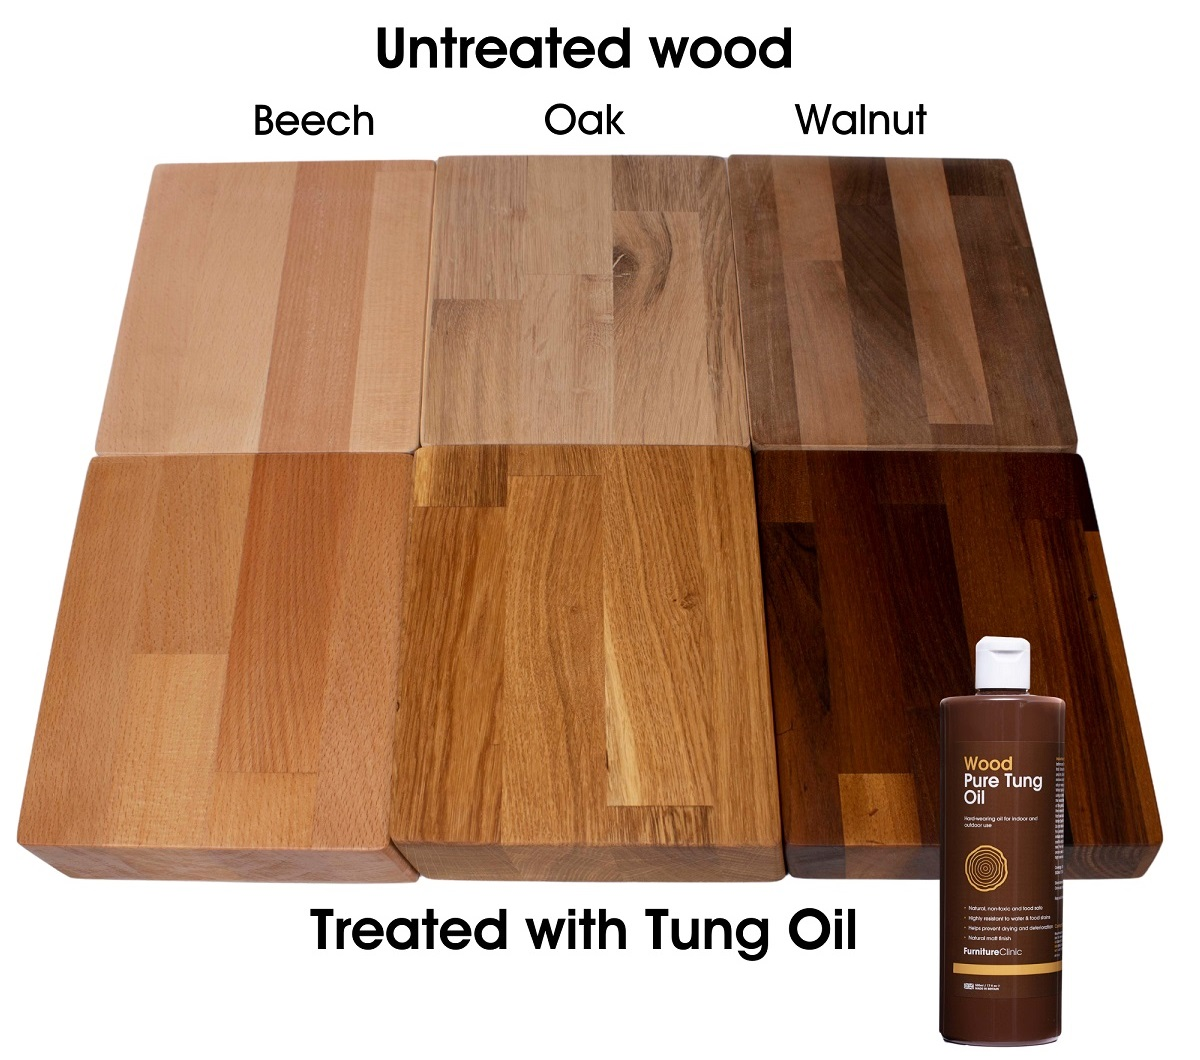 Tung Oil Comparison